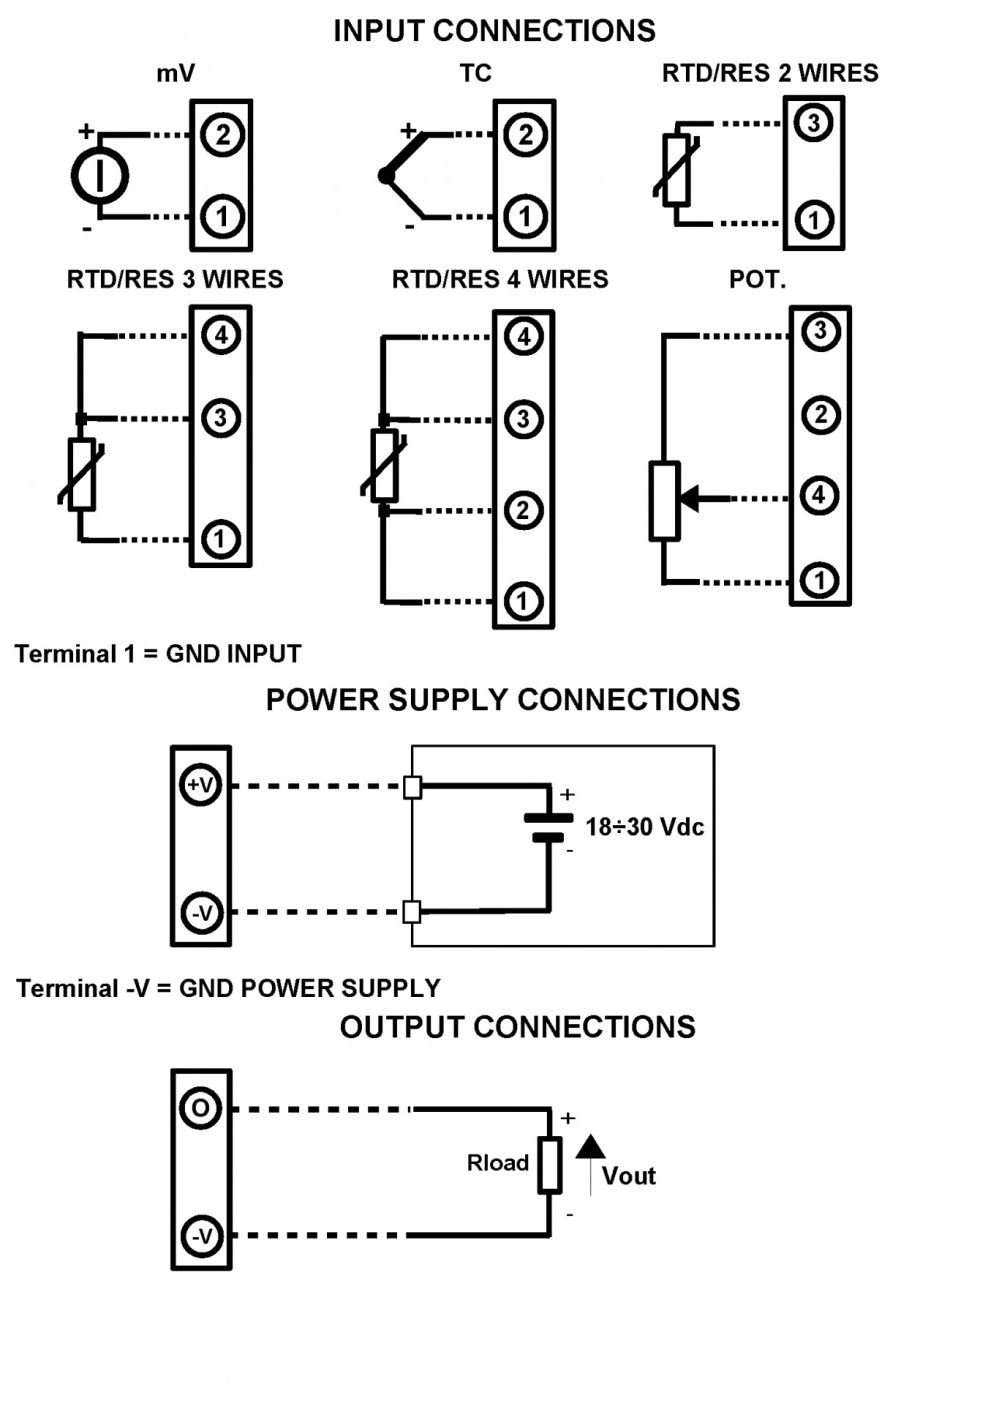 medium resolution of rtd wire colors simple wiring schema rtd 100 connector receptacle female get 3 wire rtd wiring